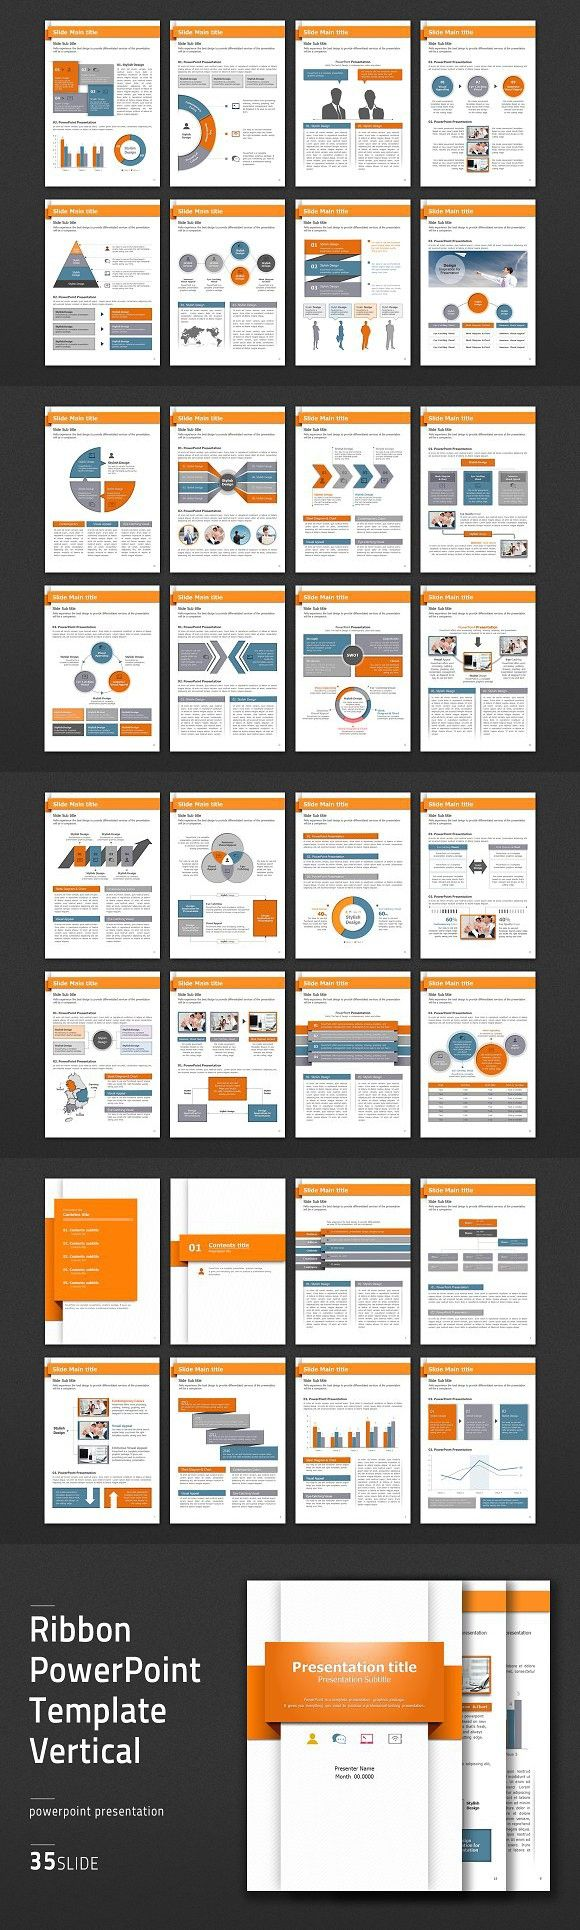 Fantastisch Mckinsey Powerpoint Vorlage Fotos - Entry Level Resume ...